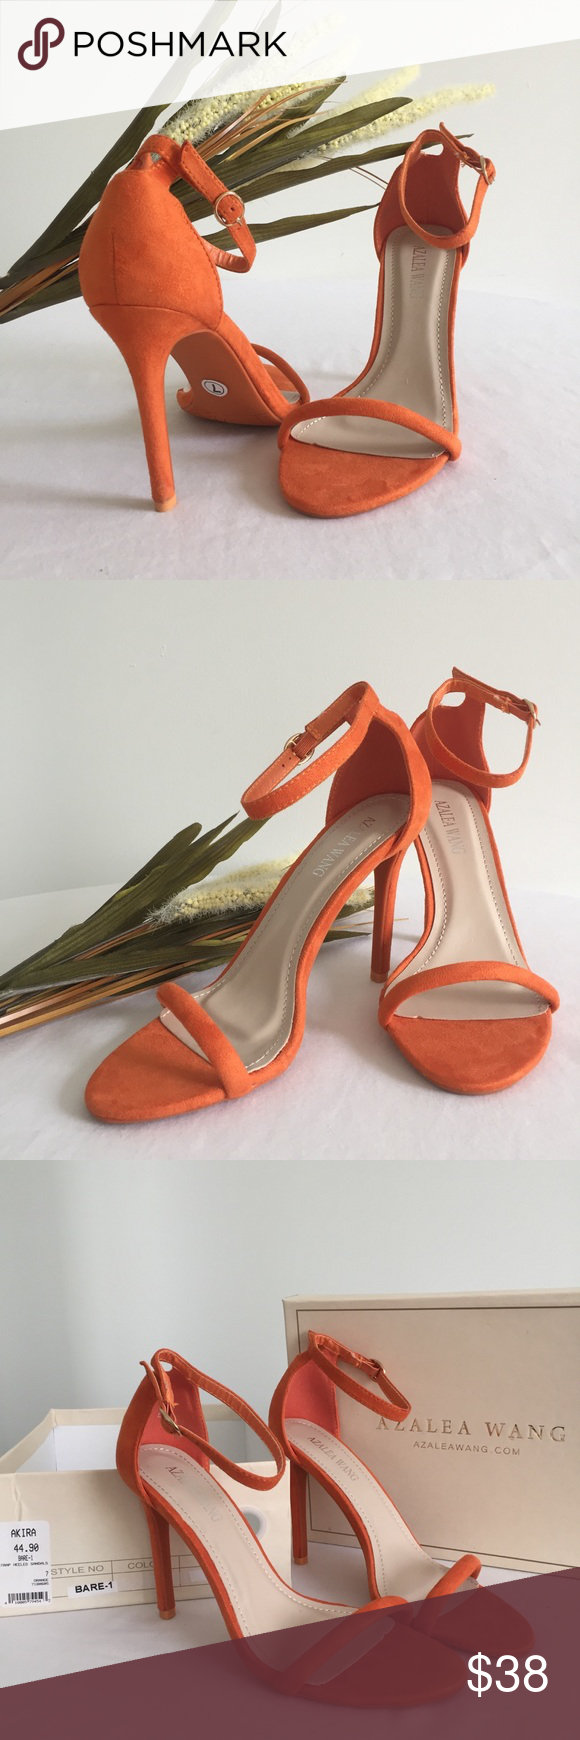 5c2ab492e91 BNWT Azalea Wang Orange Strappy Heels A pair of brand new with tags